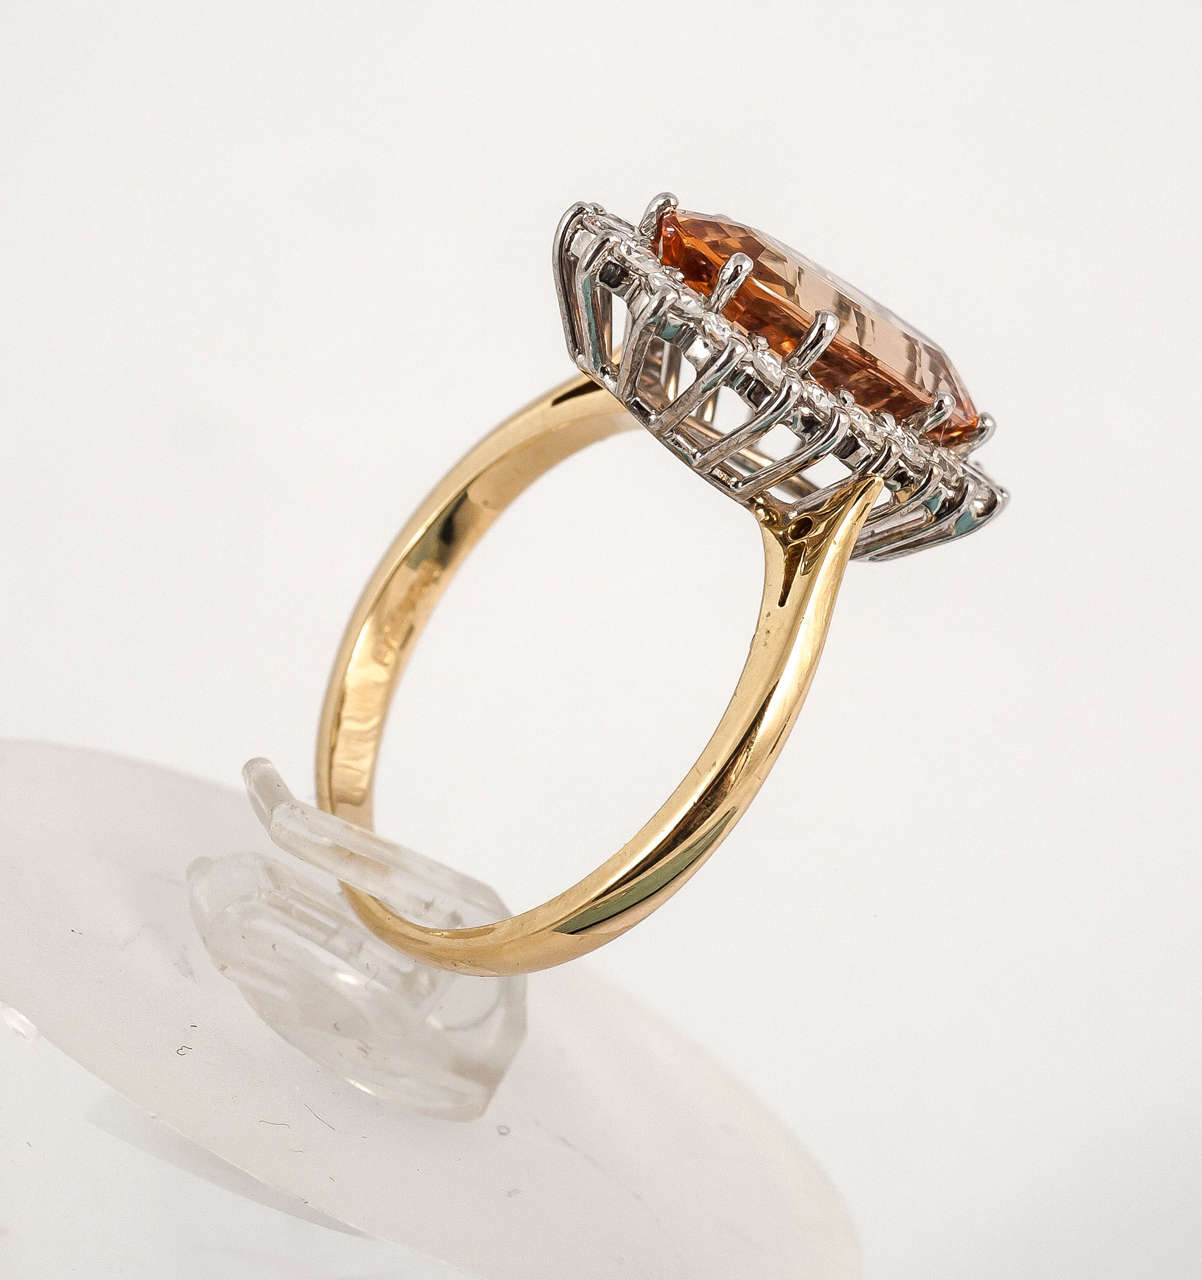 Imperial Topaz Diamond Gold Cocktail Ring In Excellent Condition For Sale In London, GB